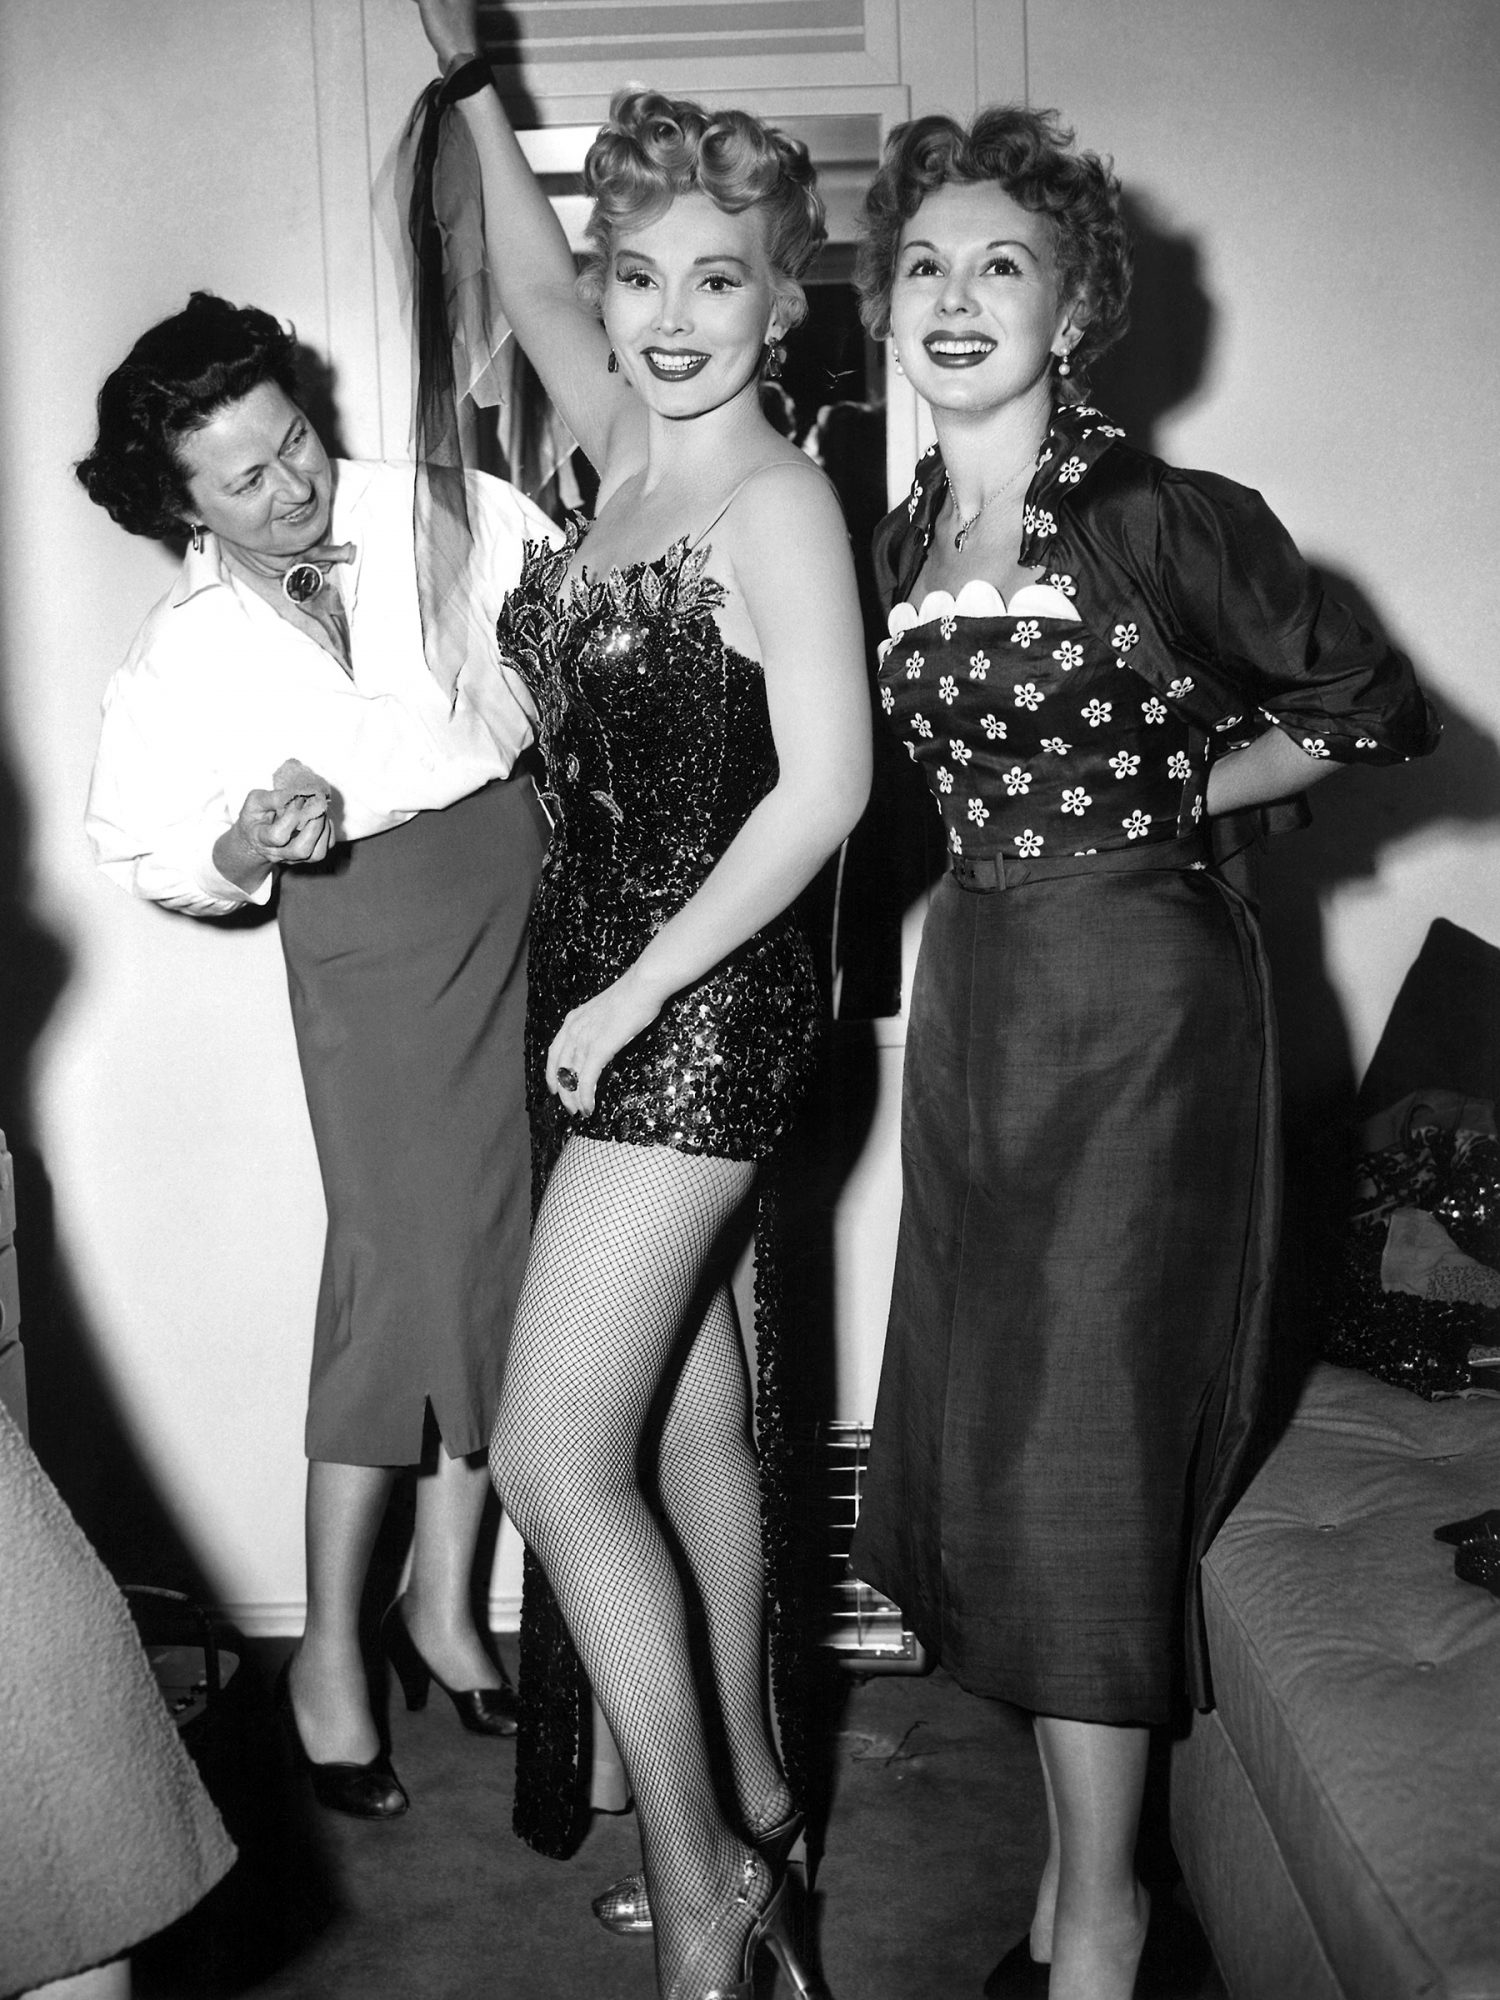 LILI, from left: Edith Wilson applies body makeup to Zsa Zsa Gabor while sister Eva Gabor visits in